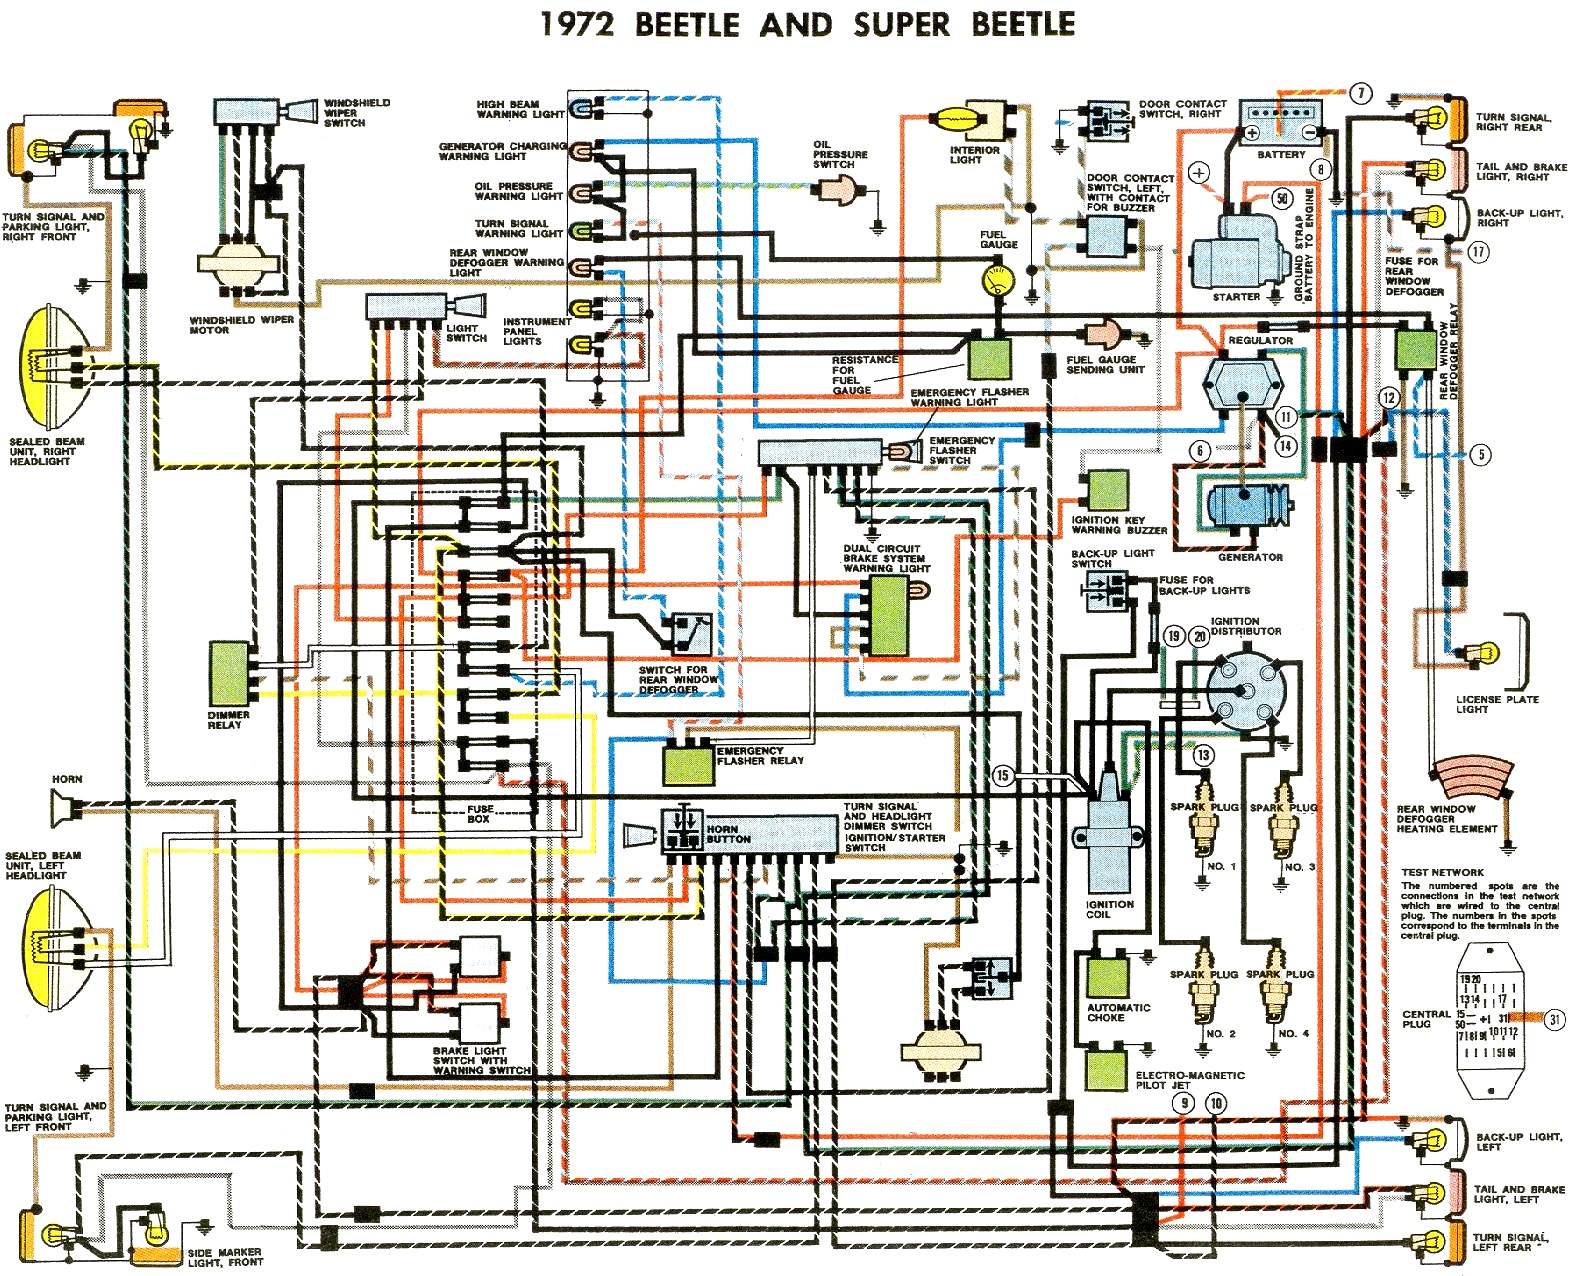 1974 vw engine diagram wiring diagram schematics1974 vw engine diagram diagram data schema 1974 vw engine diagram 1974 vw engine diagram